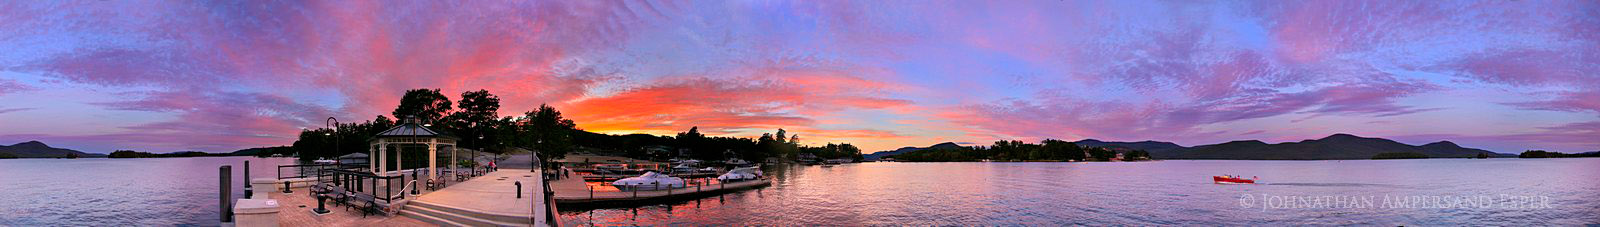 Bolton Landing, Lake George,sunset,360� panorama,Bolton Landing Lake George,town dock,Lake George sunset,, photo